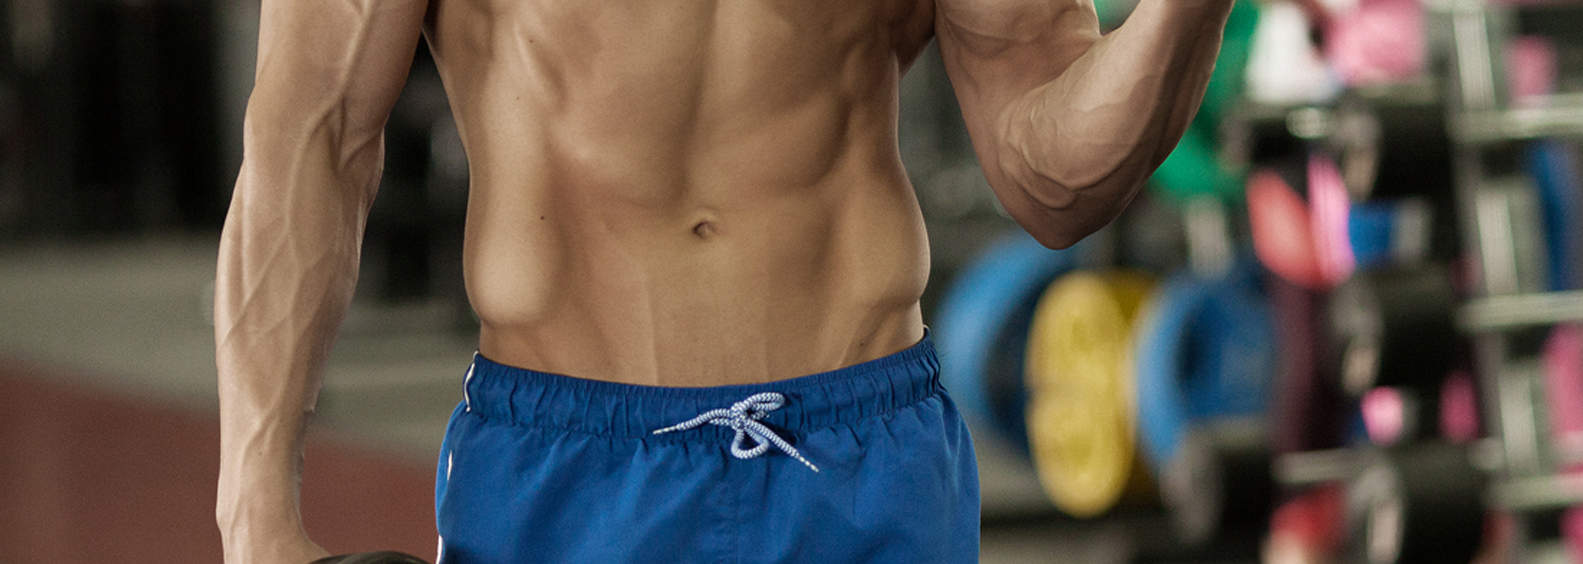 Best Exercises to Build Your Obliques and Firm Your Core